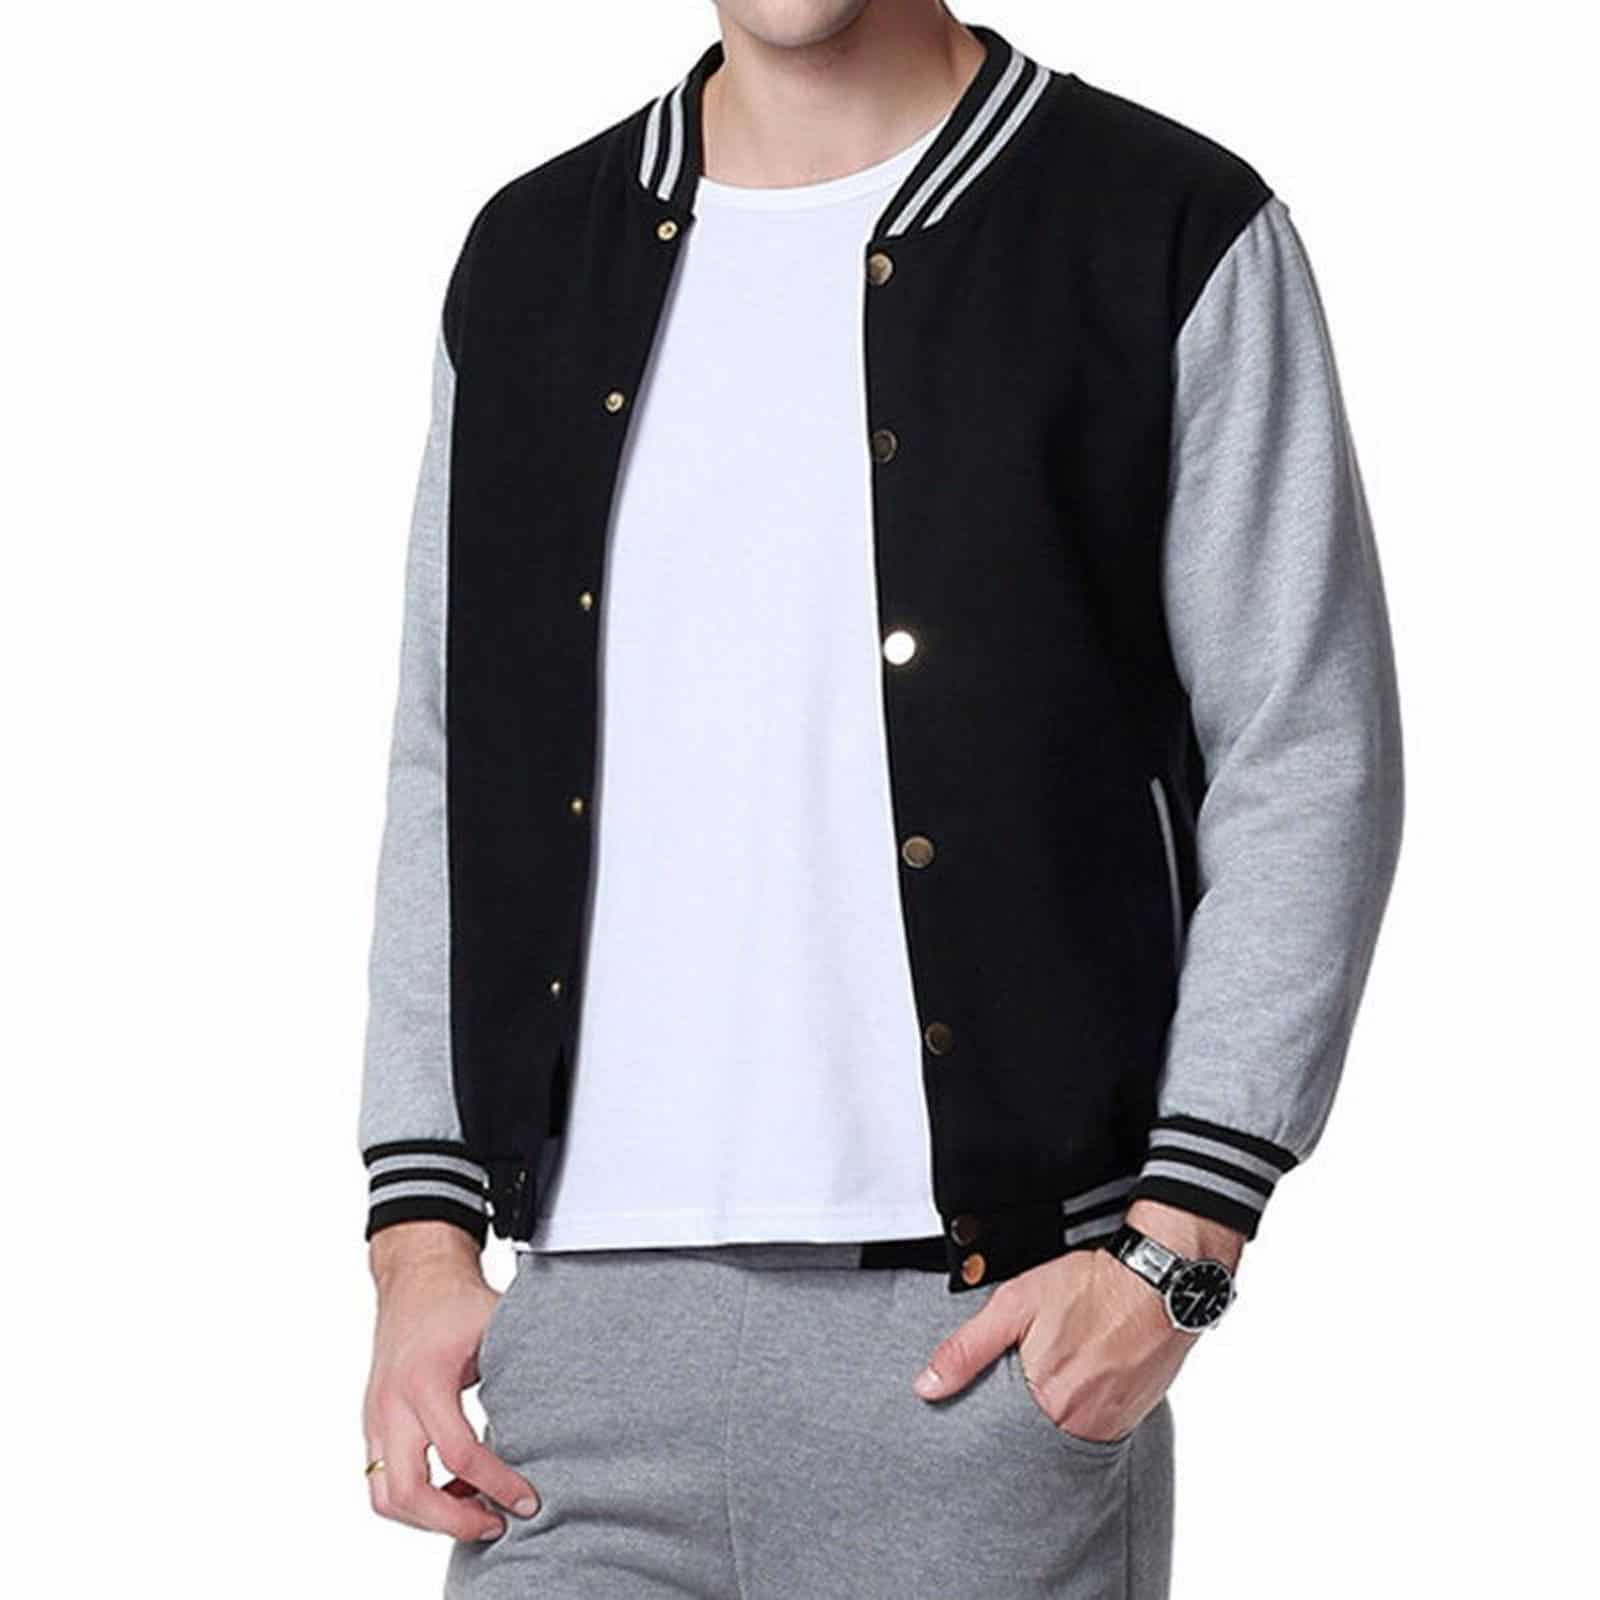 Cultural Exchange Big Boy Negro League Baseball Mens Varsity Jacket [Grey - 3XL] Sold by The Cultural Exchange Shop. $ Cultural Exchange Big Boy Negro League Baseball Mens Varsity Jacket [Grey - XL] Sold by .